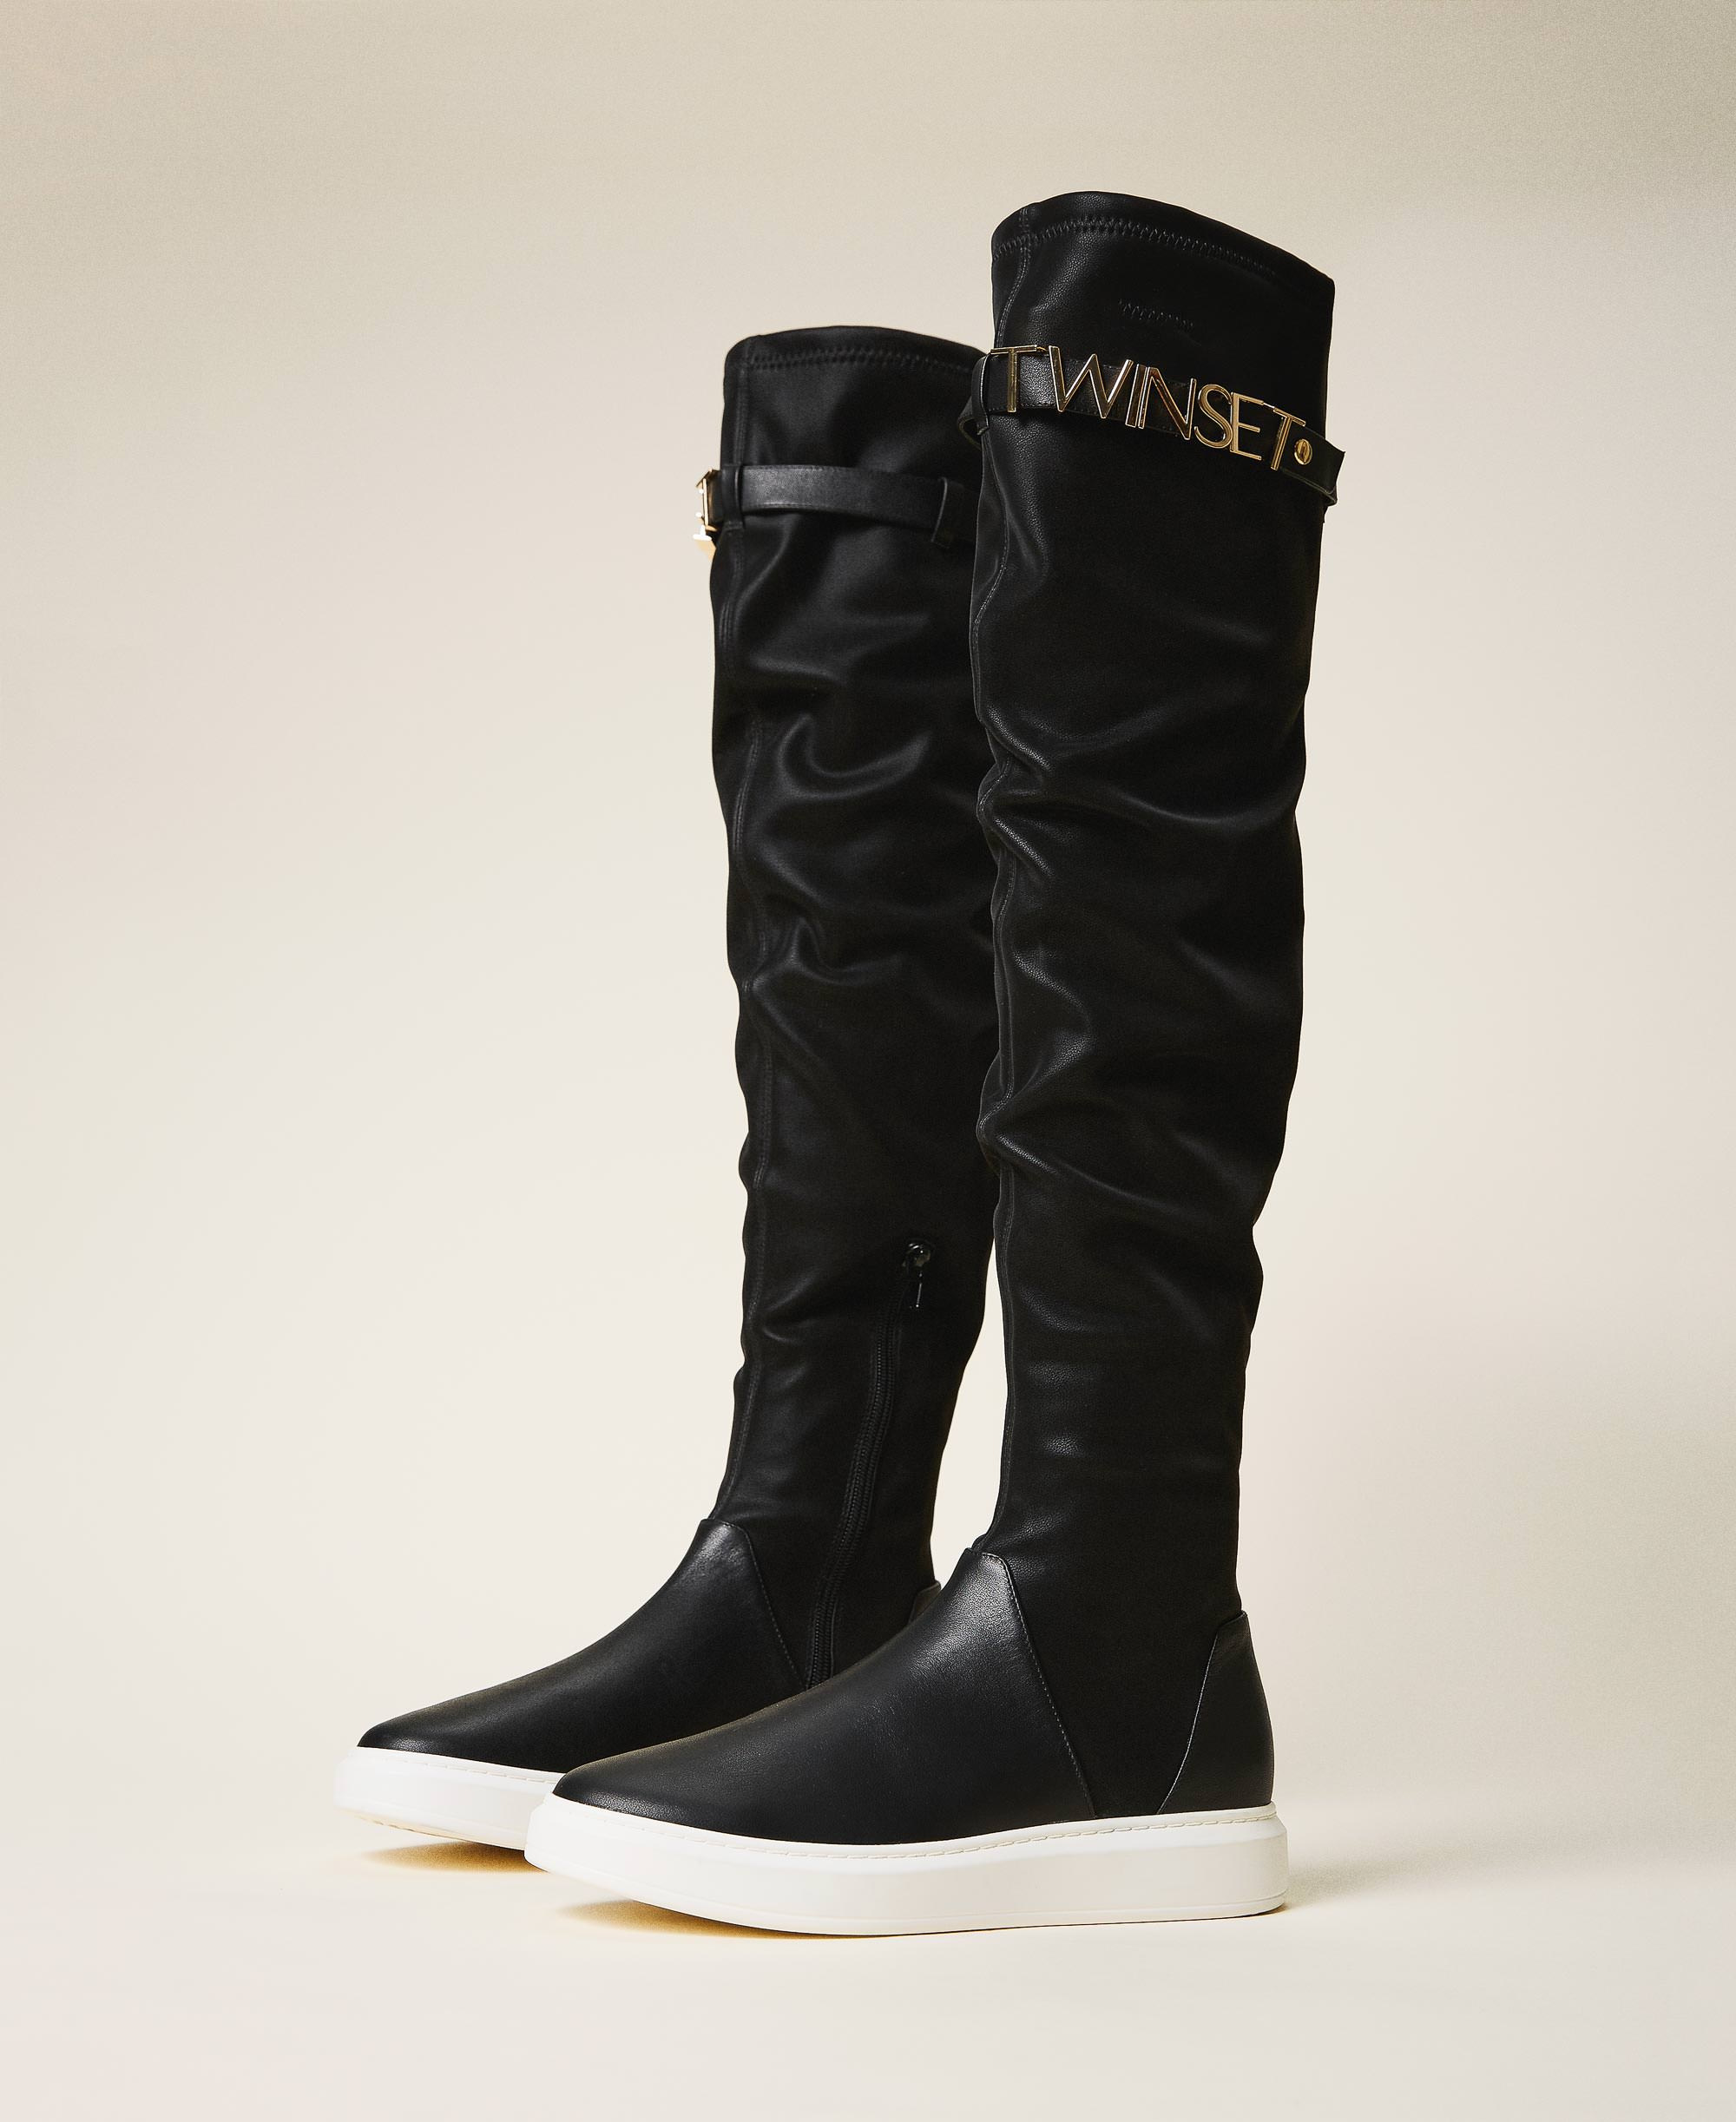 Trainer boots with logo Woman, Black